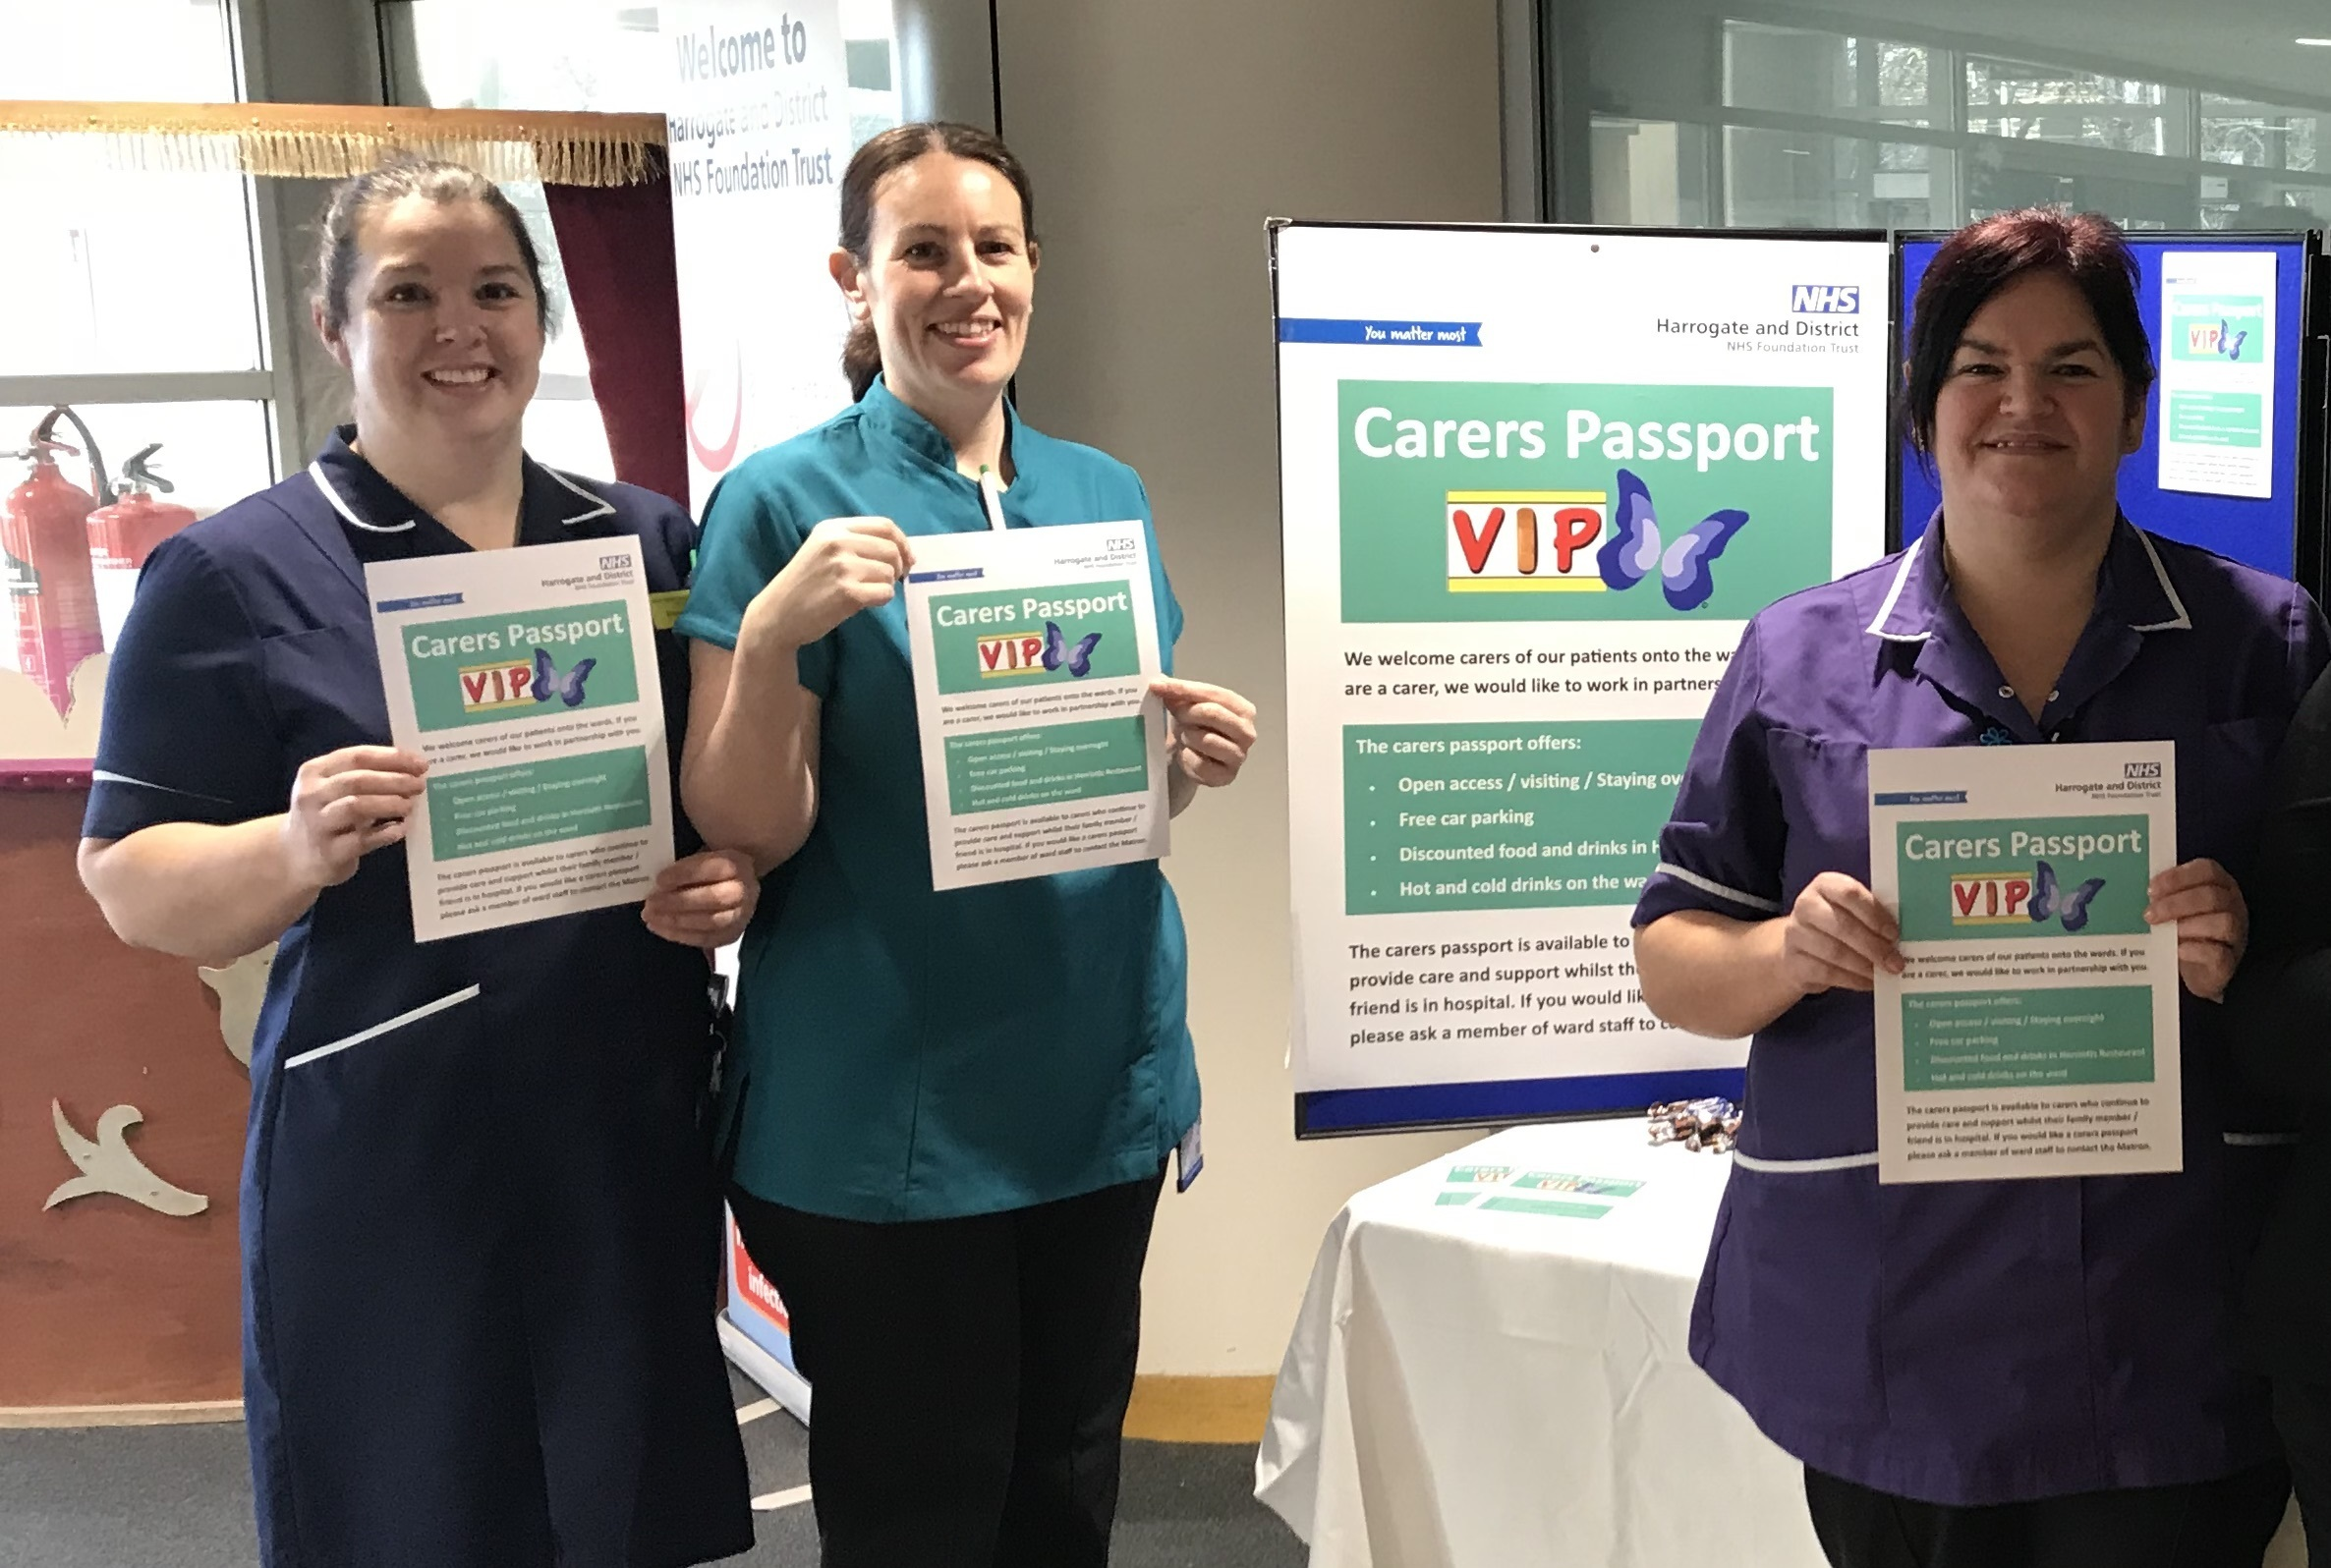 Pictured from left to right are: Brenda McKenzie, Unit Manager of Sir Robert Ogden Macmillan Centre, Sarah Davie, Palliative Care Nurse and Tammy Gotts, Lead Matron for Patients Living with Dementia.